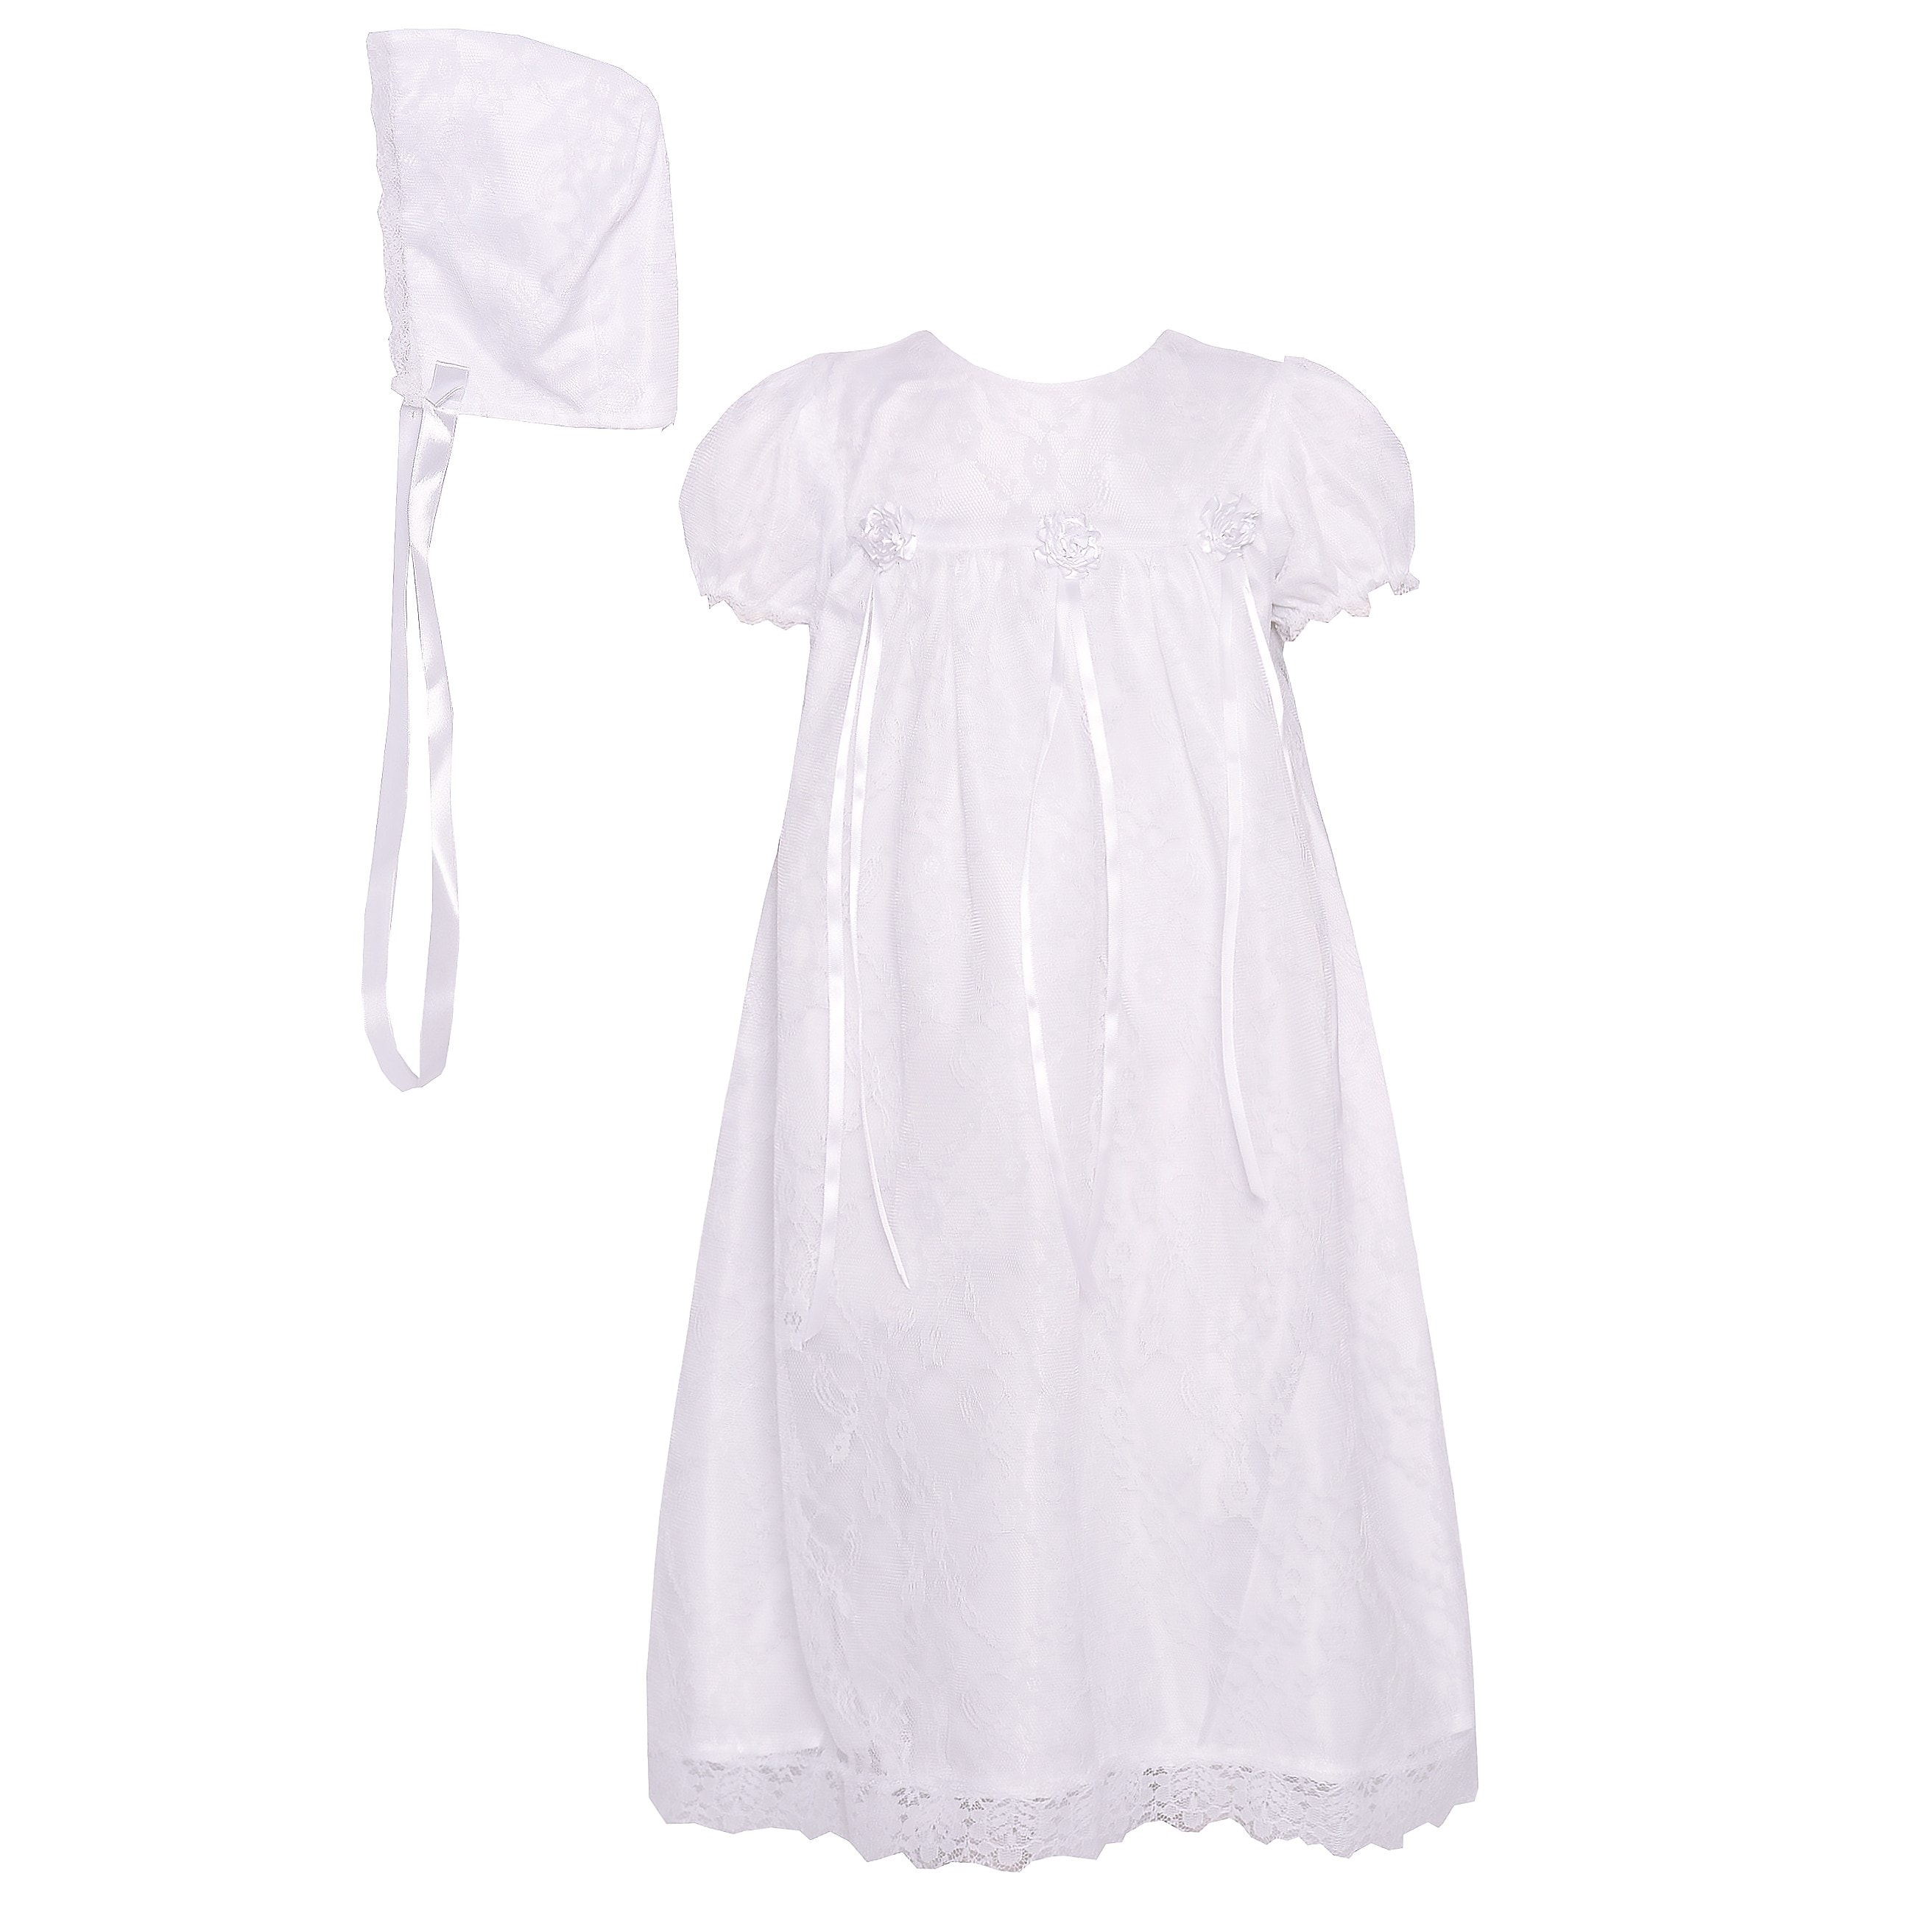 60770d793 Baby Clothing | Shop our Best Baby Deals Online at Overstock